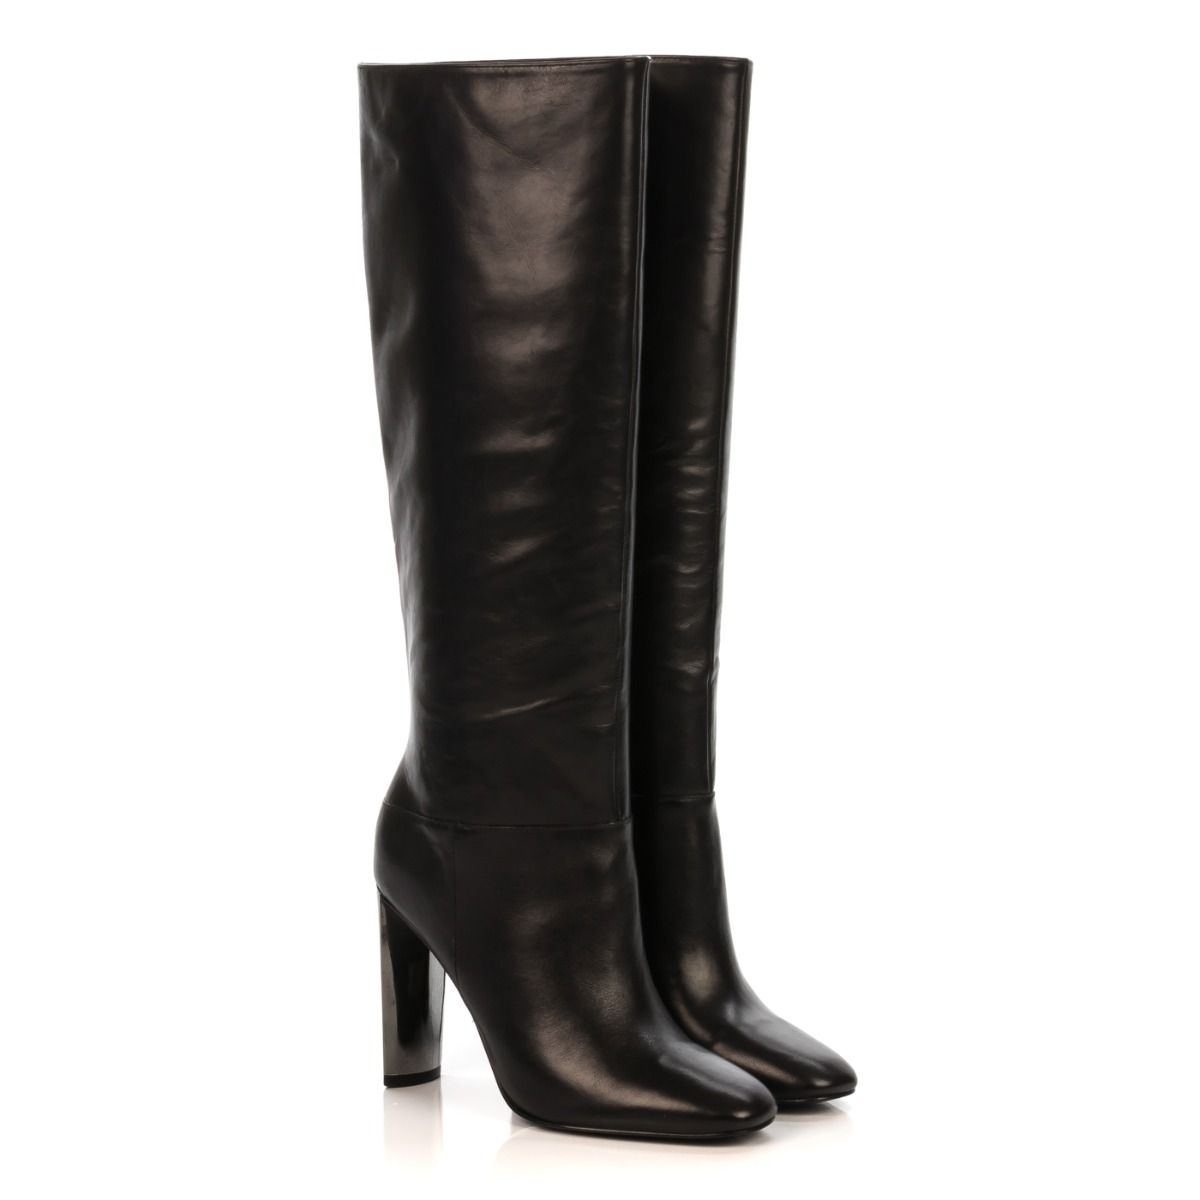 low priced 6d3be 779f2 GUESS STIVALE DONNA FLKCE4 LEA11 NERO TACCO ACCIAIO